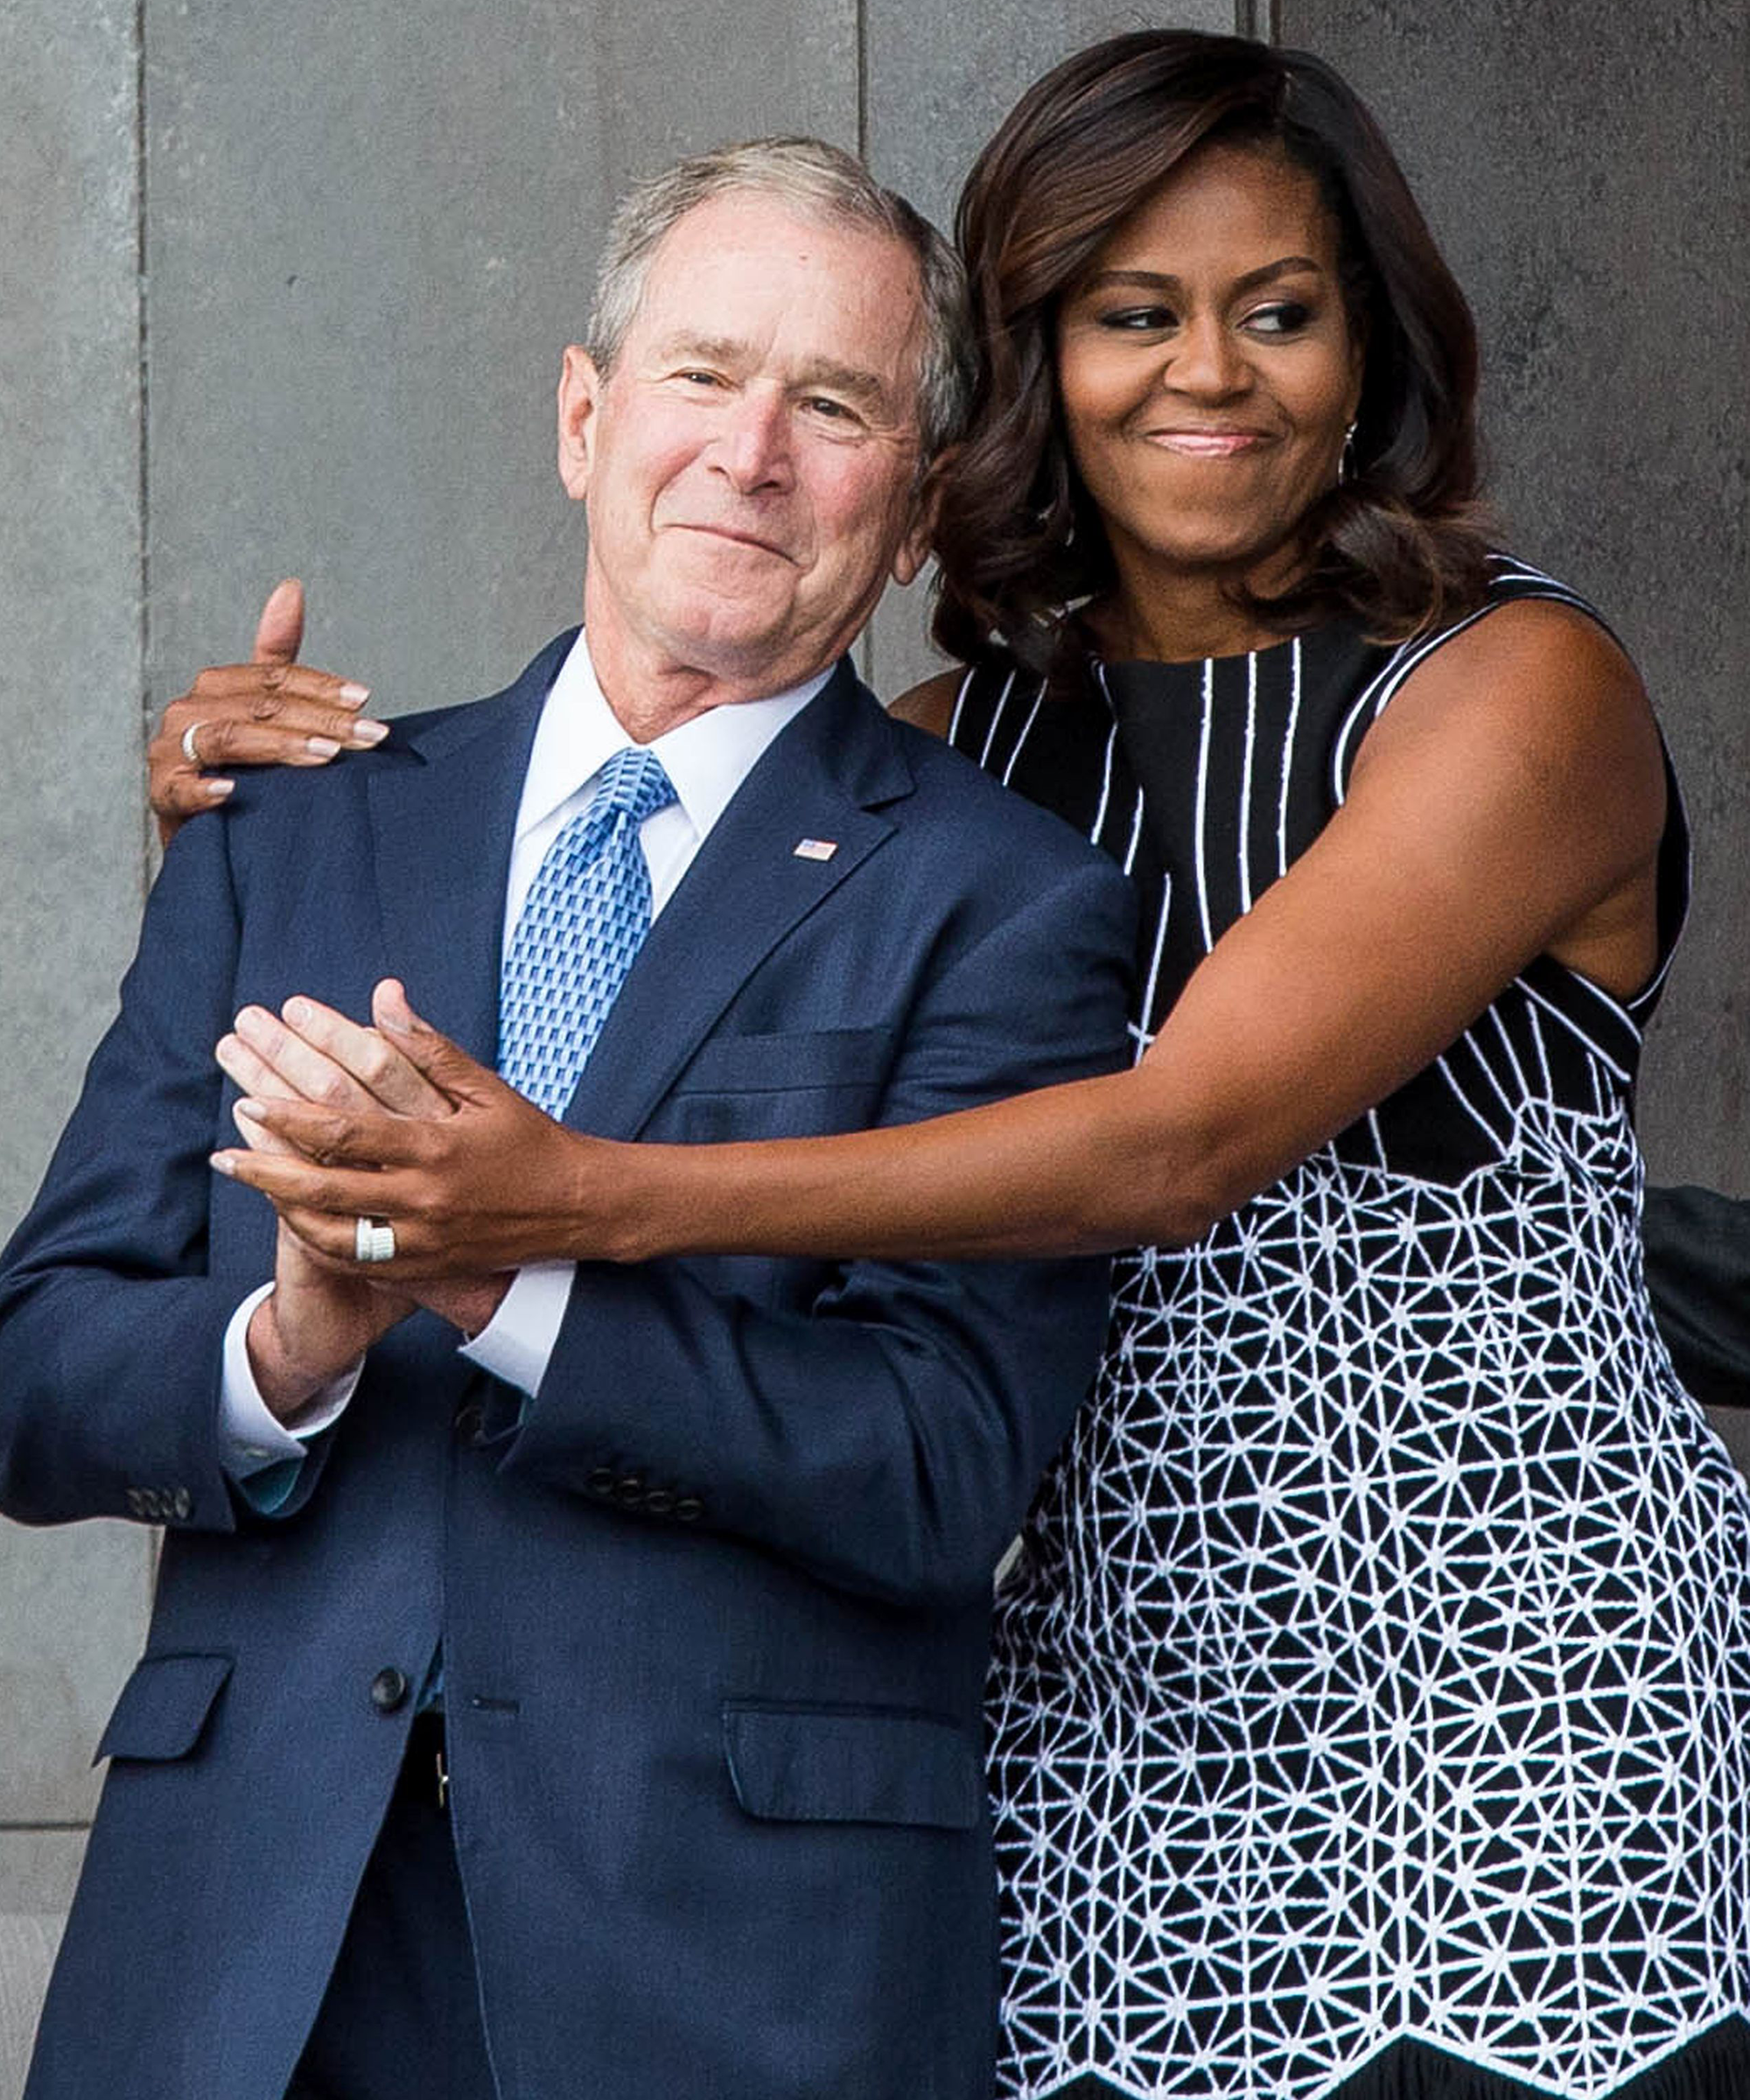 George W. Bush Really Wants You to Like Him Now